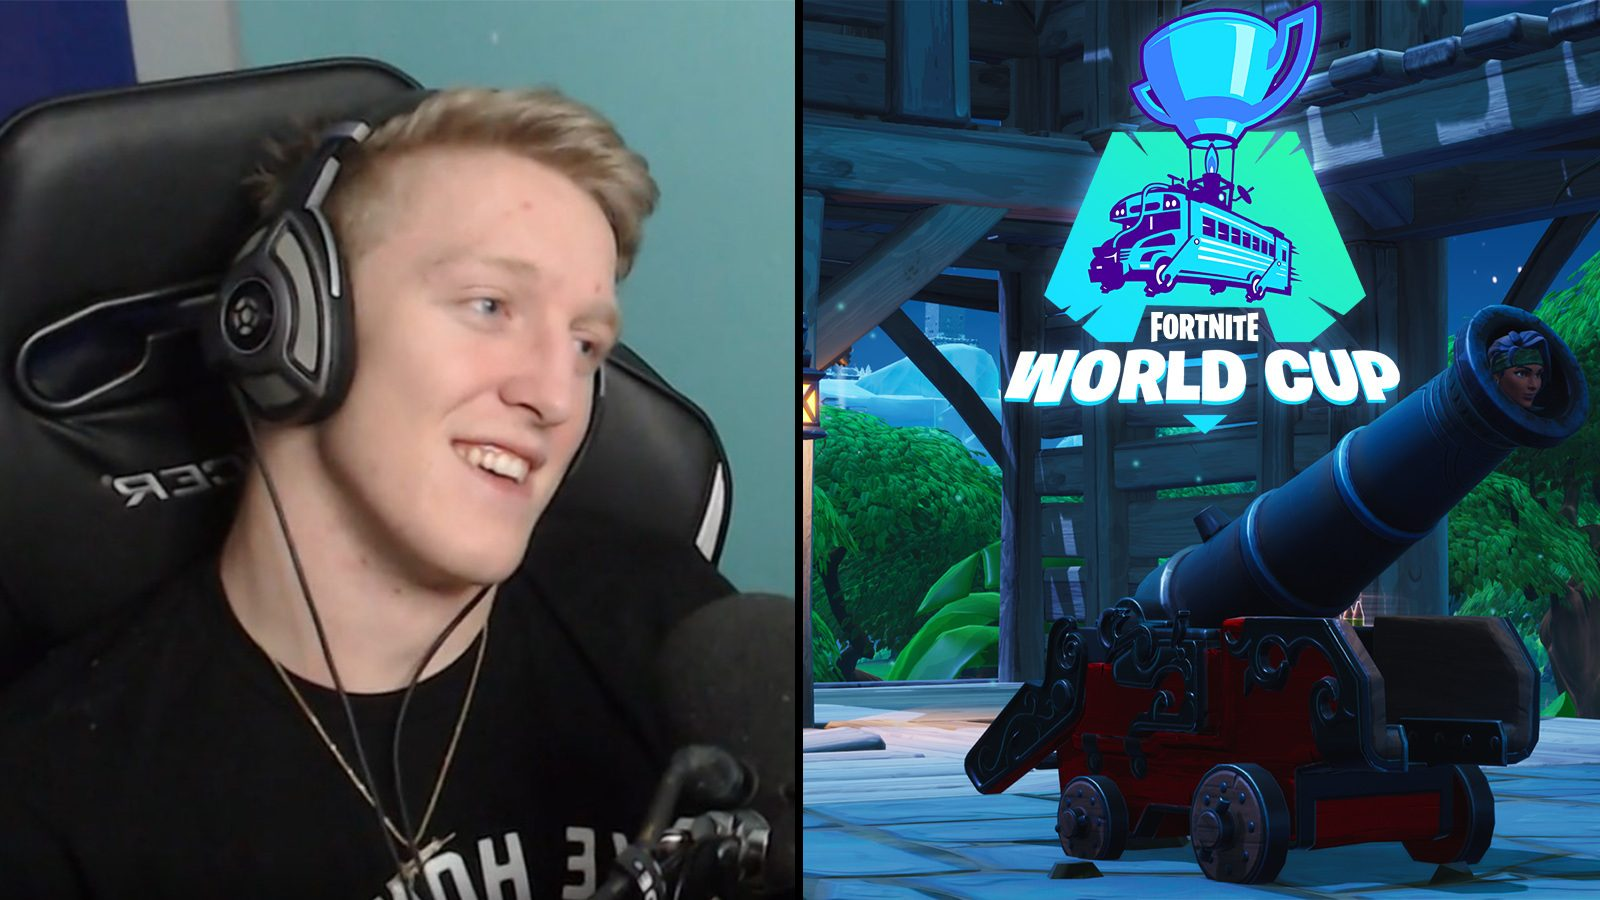 Tfue Fails Miserably While Explaining His Fortnite World Cup